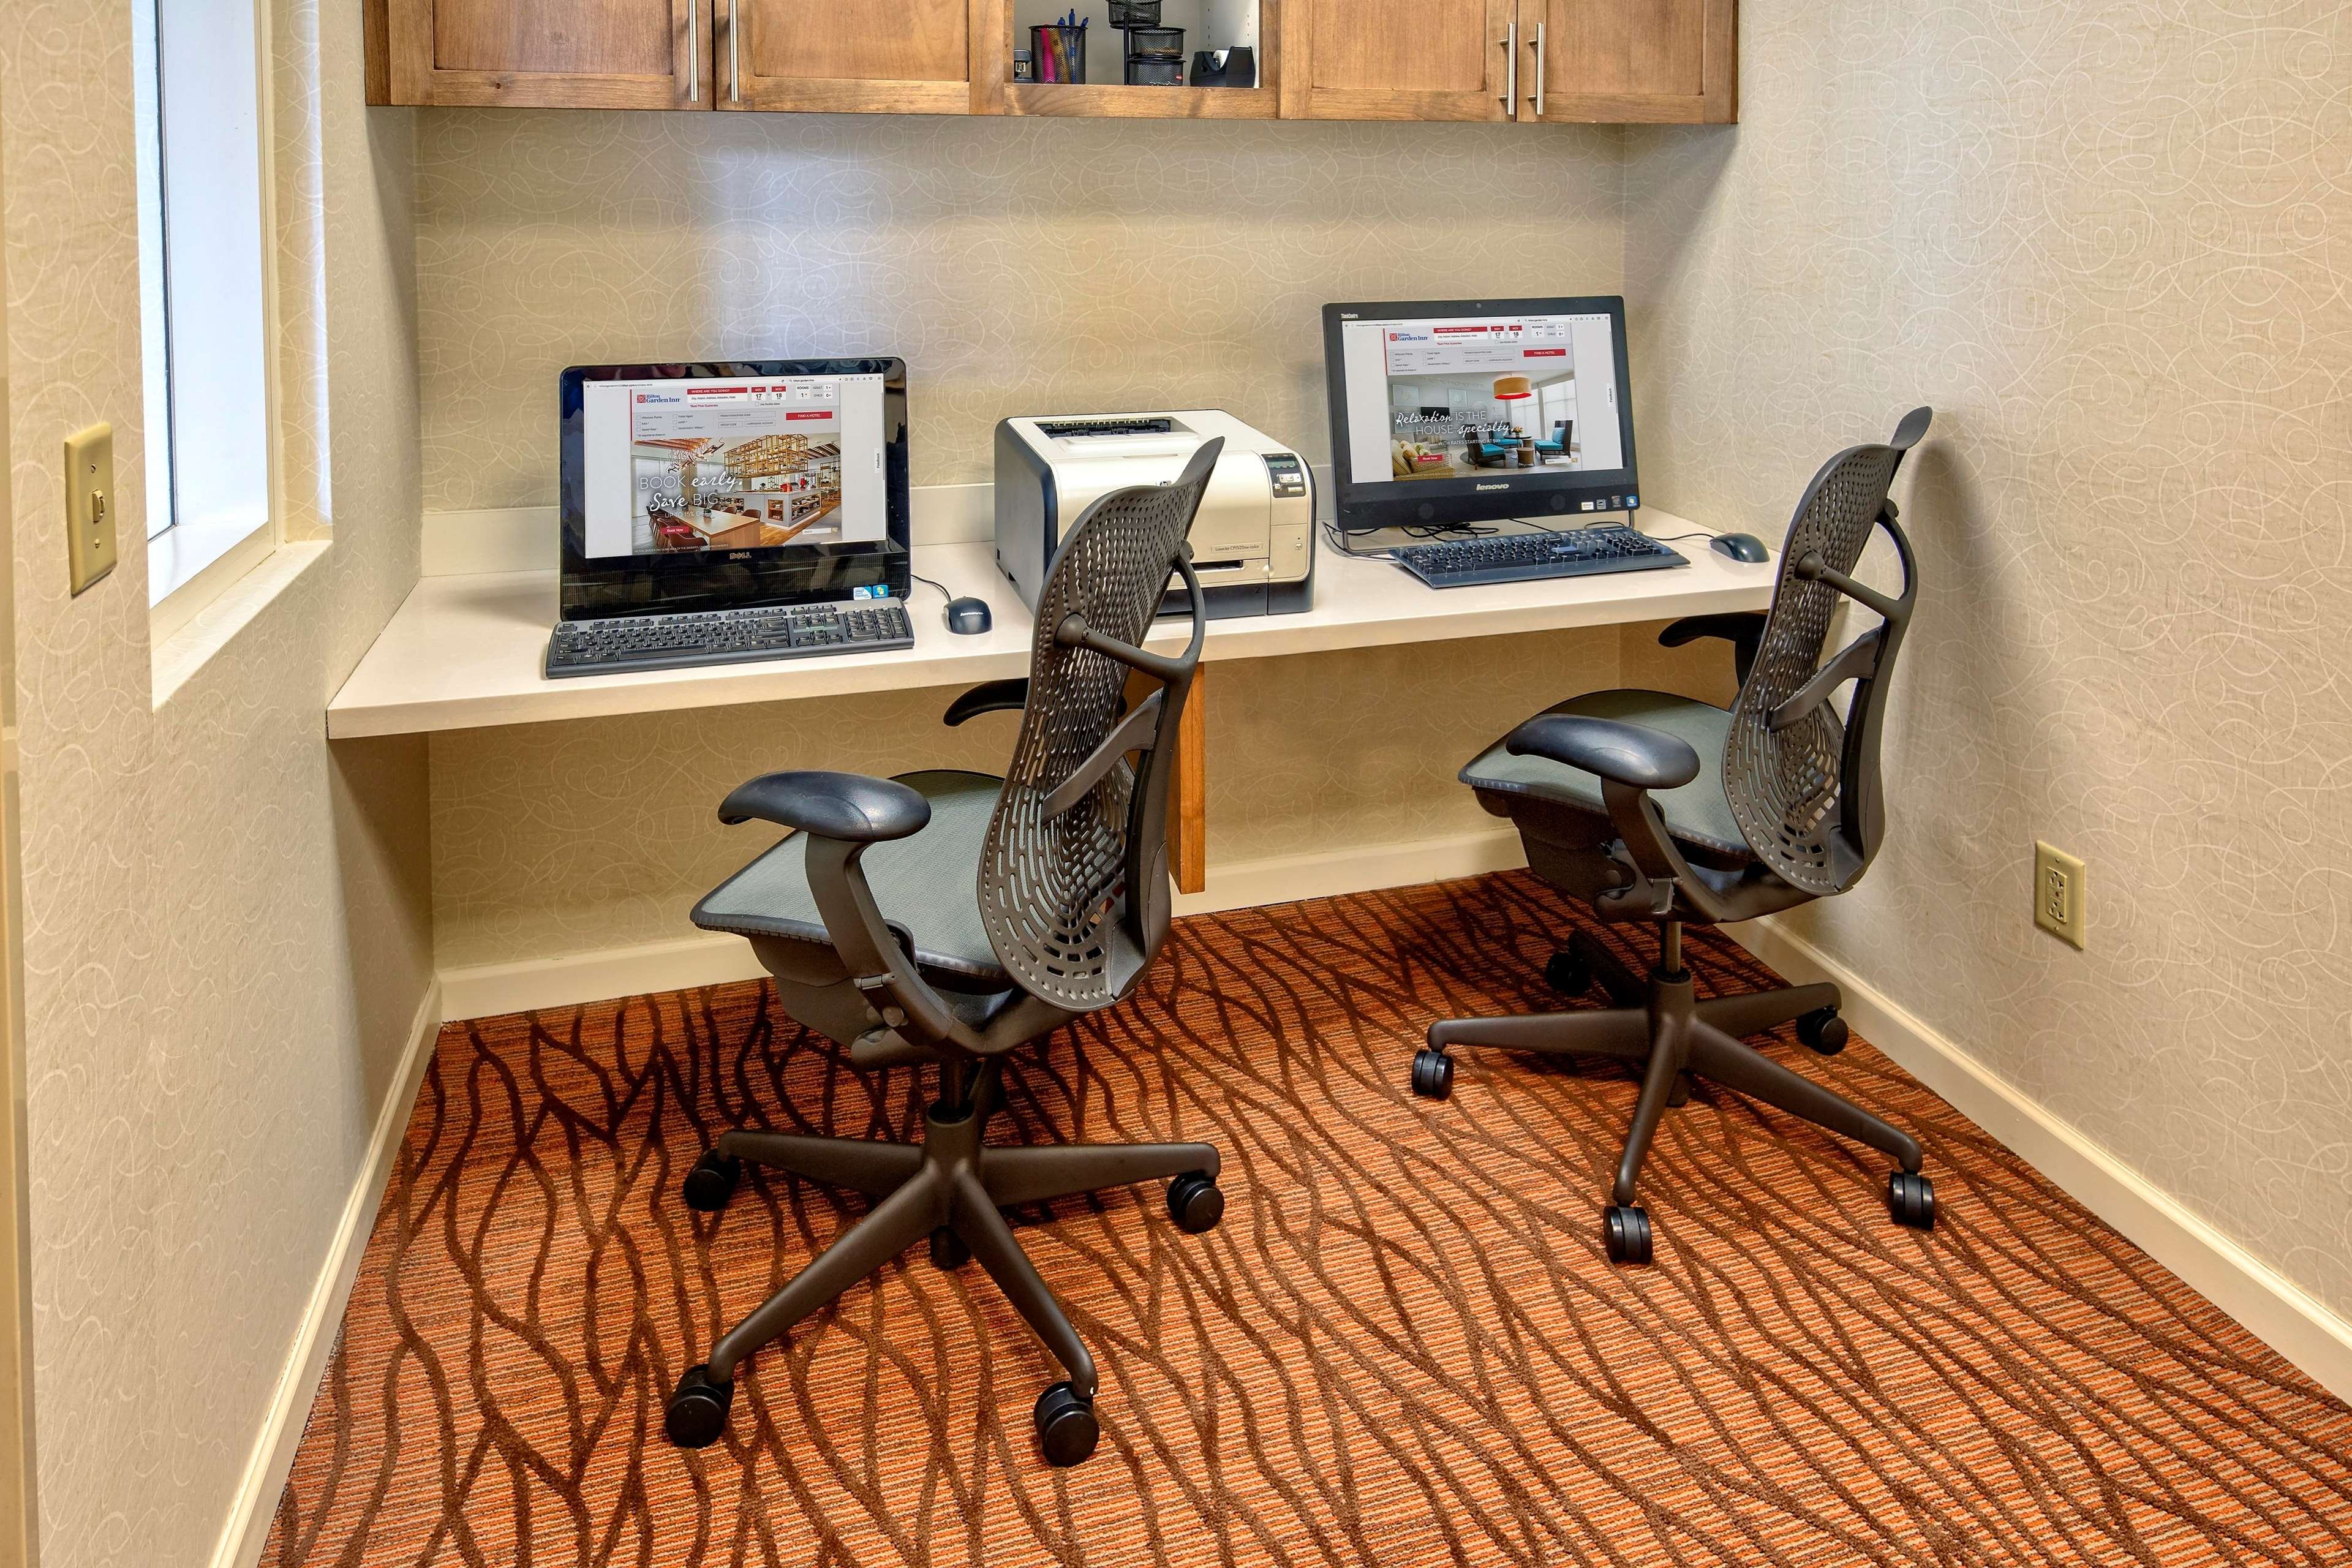 Hilton Garden Inn Houston/Bush Intercontinental Airport image 5